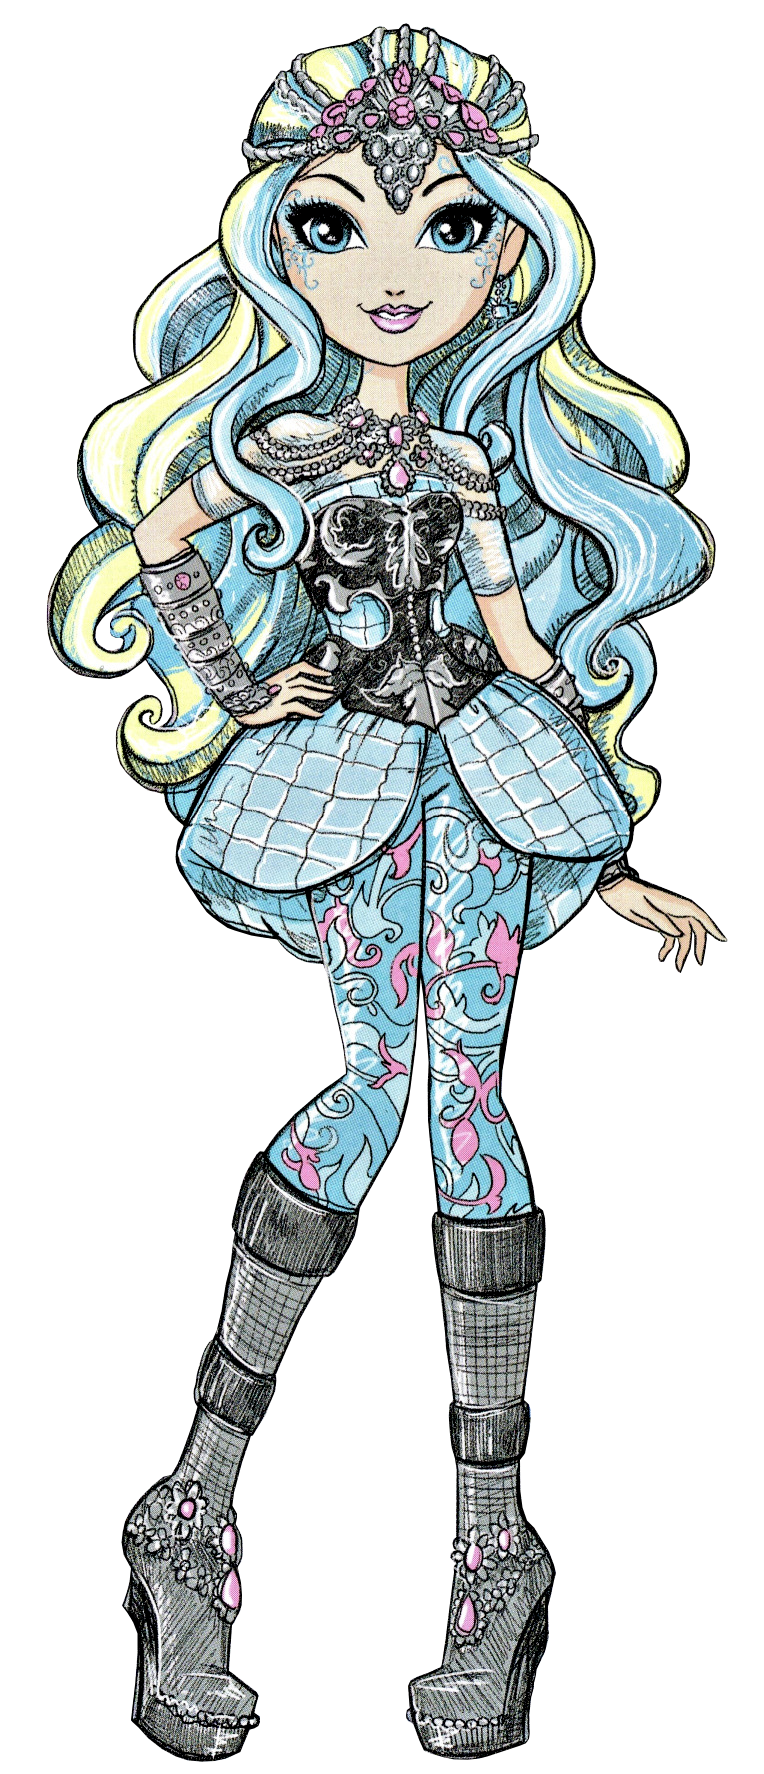 Darling Charming Dragon Games New Book Art Ever After High Dragon Games Monster High Characters